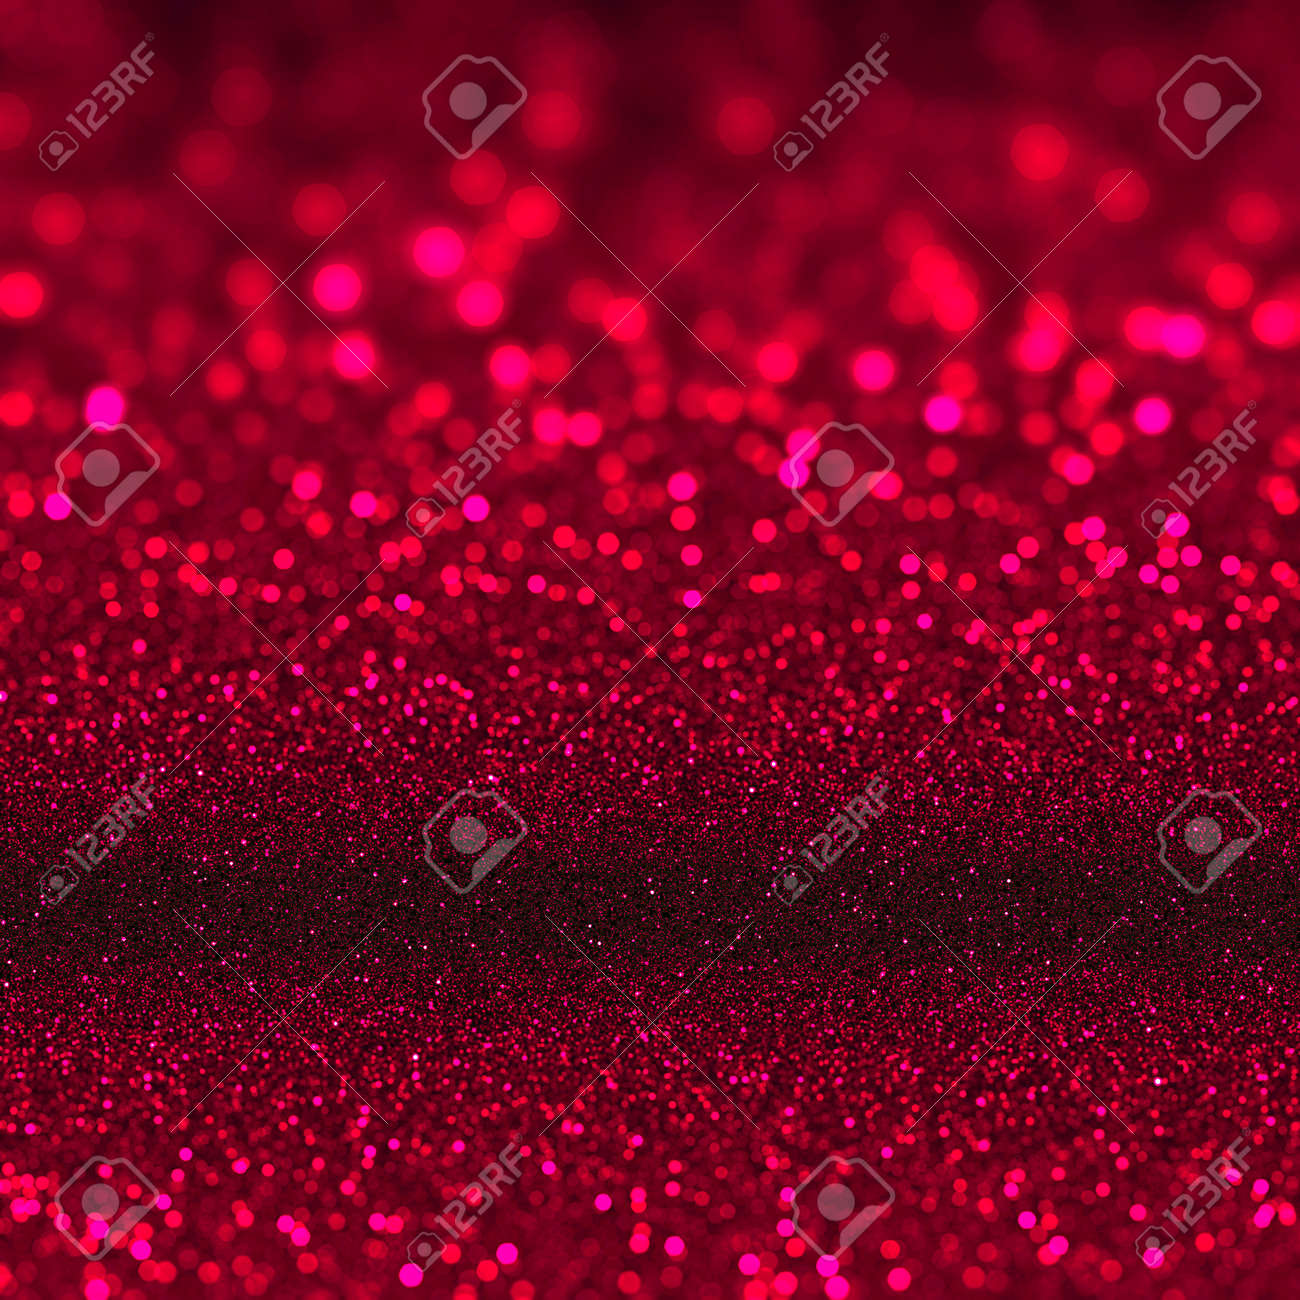 Ruby Red Glitter Sparkles Textured Christmas Sequins Background Fashion Glamour Glittering Wallpaper Stock